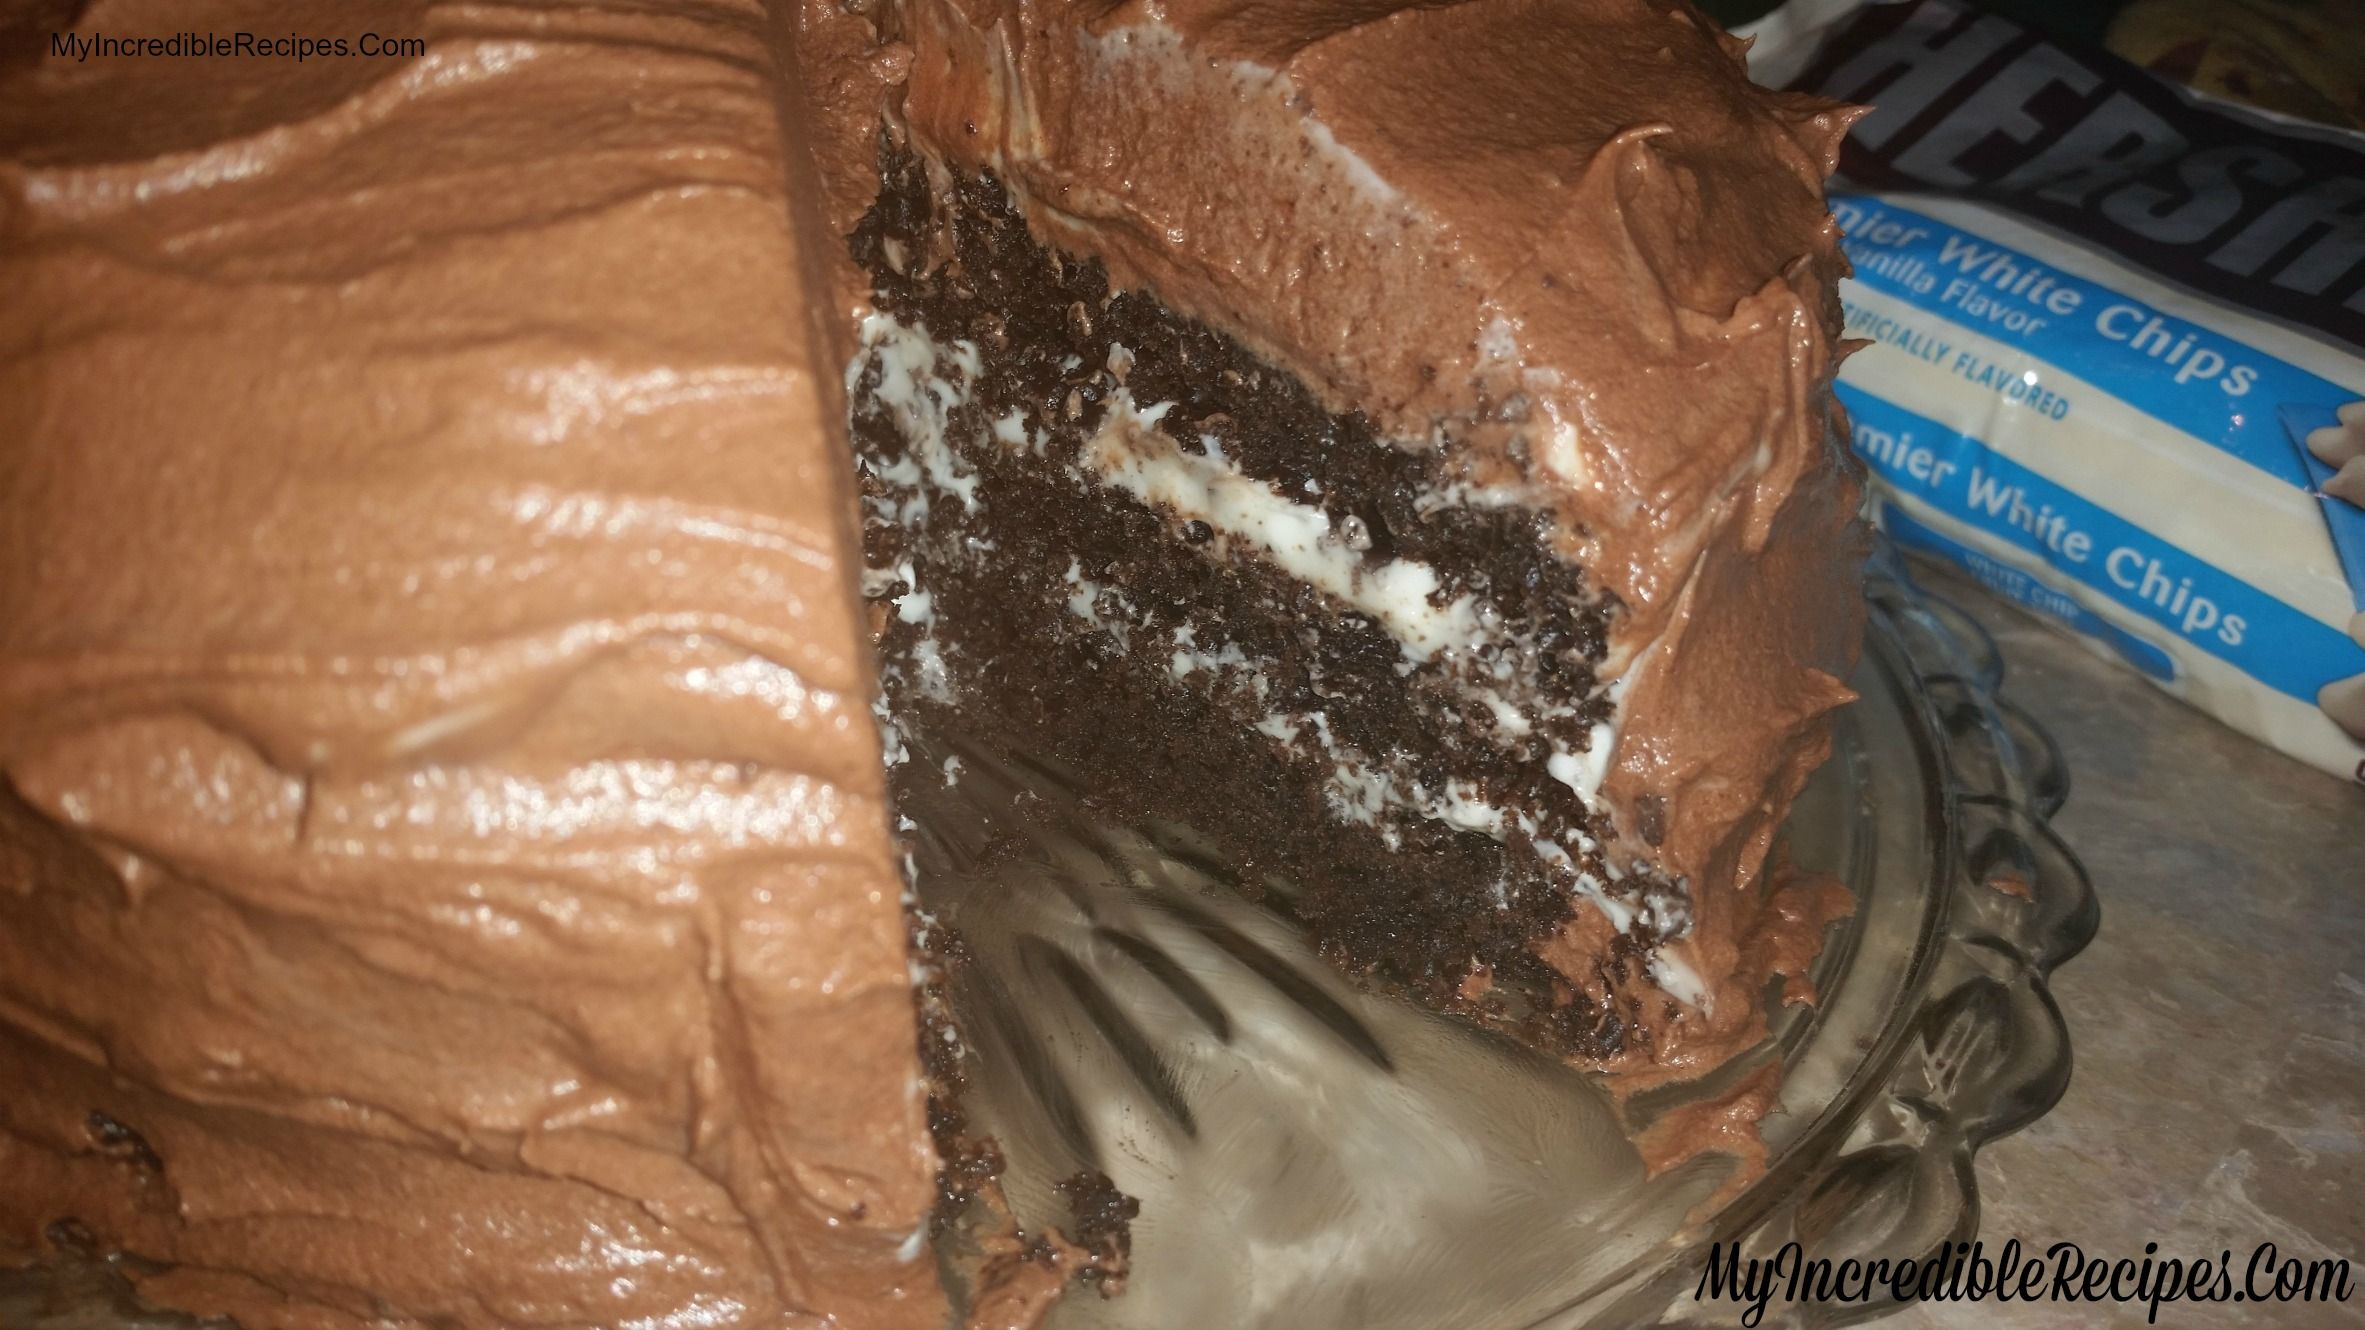 Hersheys Chocolate Cake with Cream Cheese Filling & Chocolate Cream Cheese Buttercream